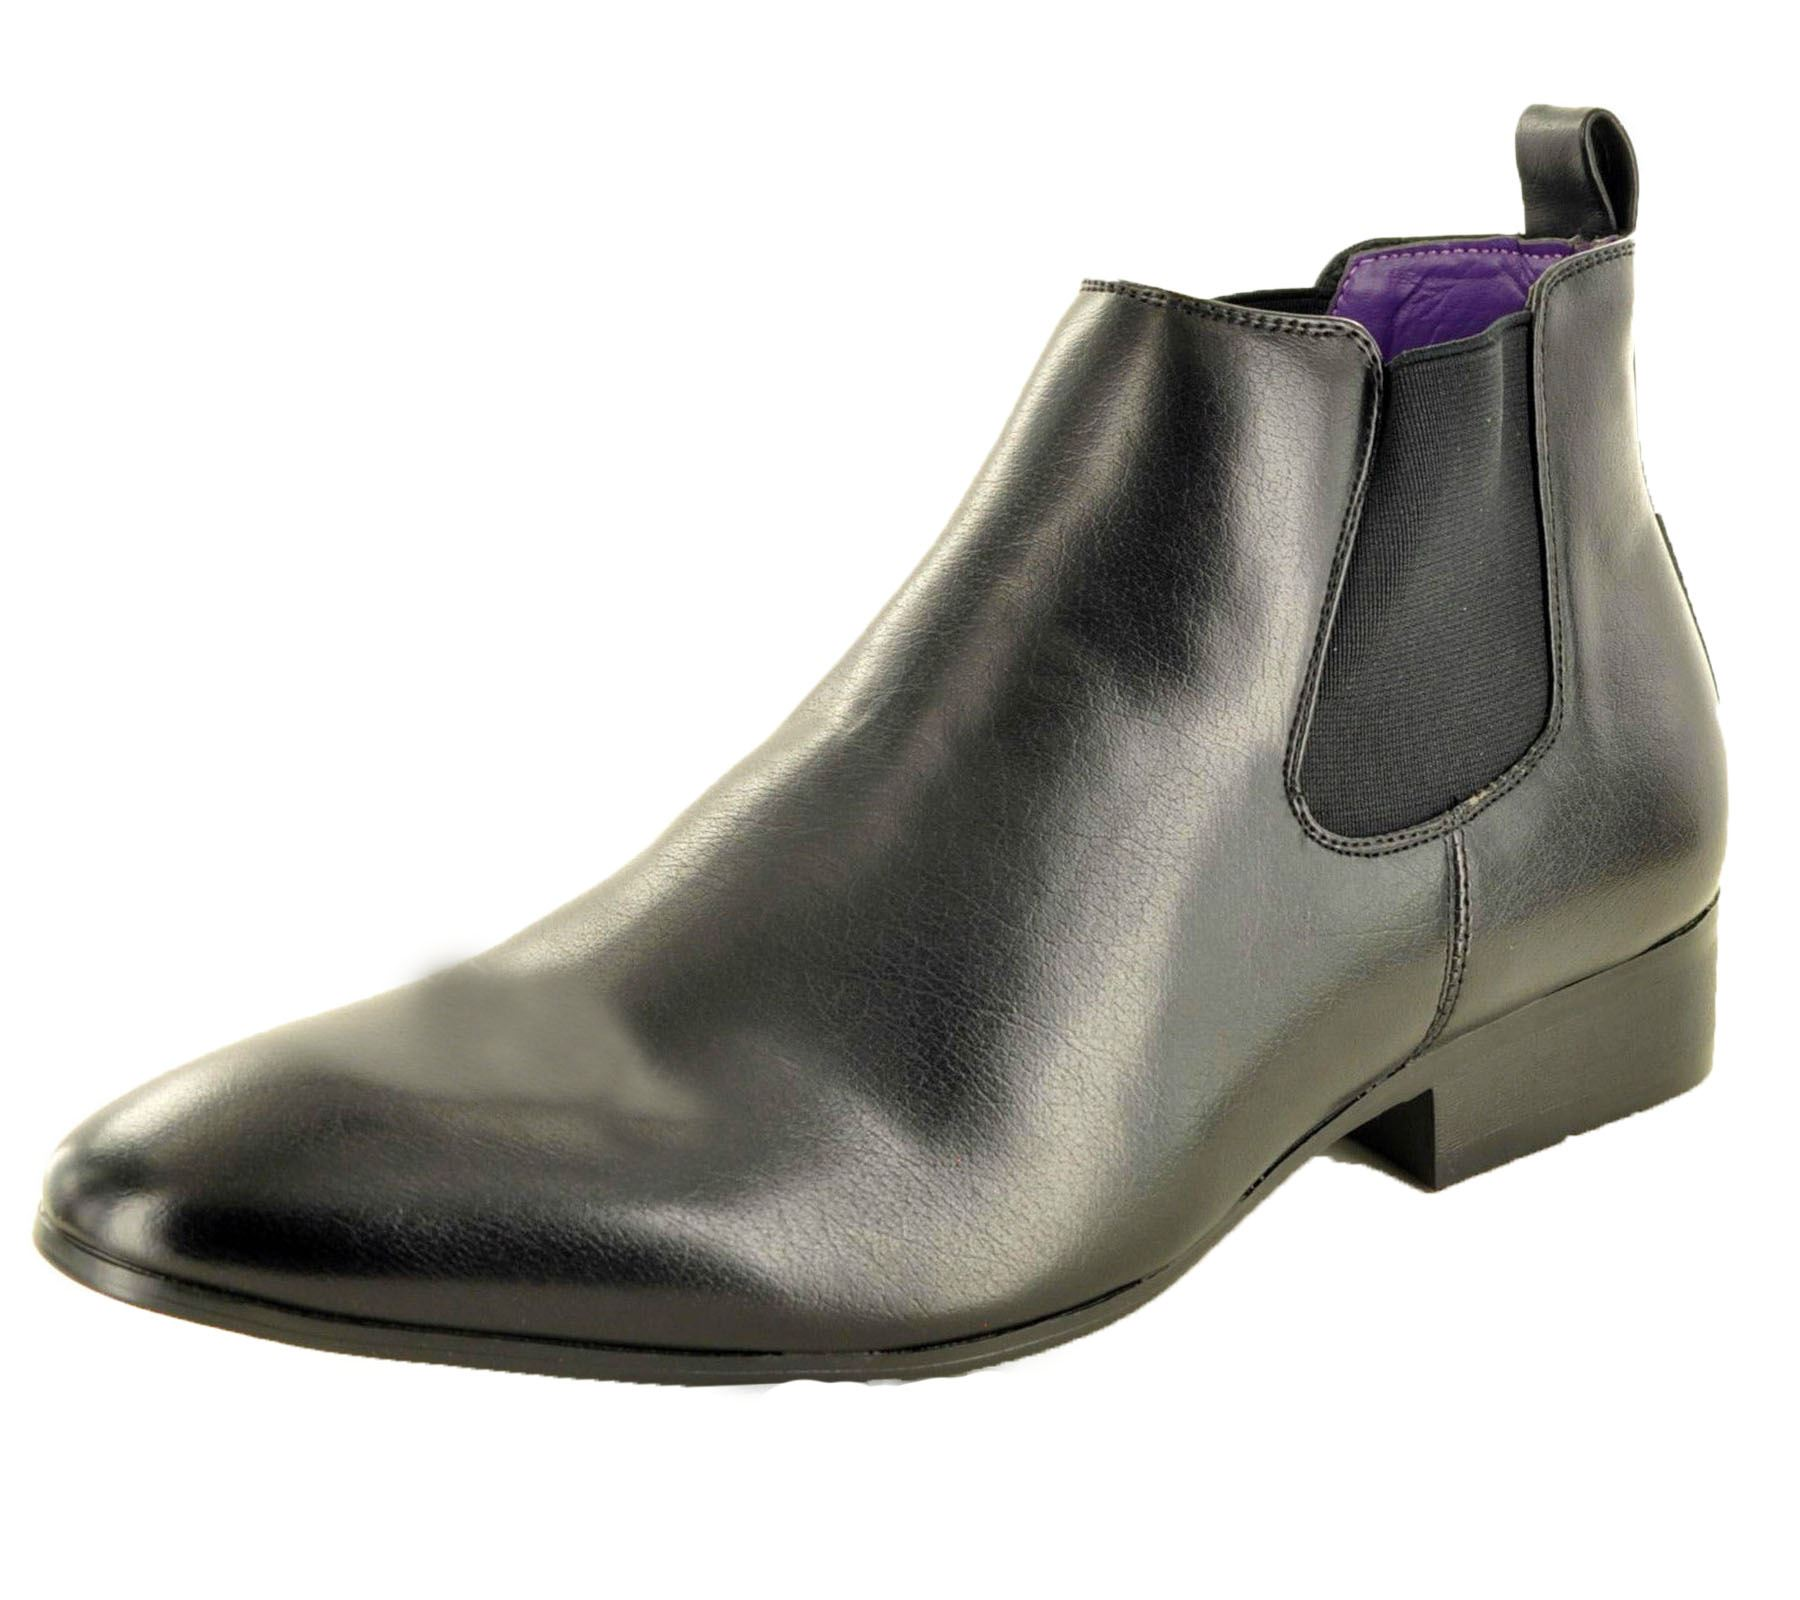 Mens-Chelsea-Boots-High-Top-Gusset-Synthetic-Leather-Shoes thumbnail 3